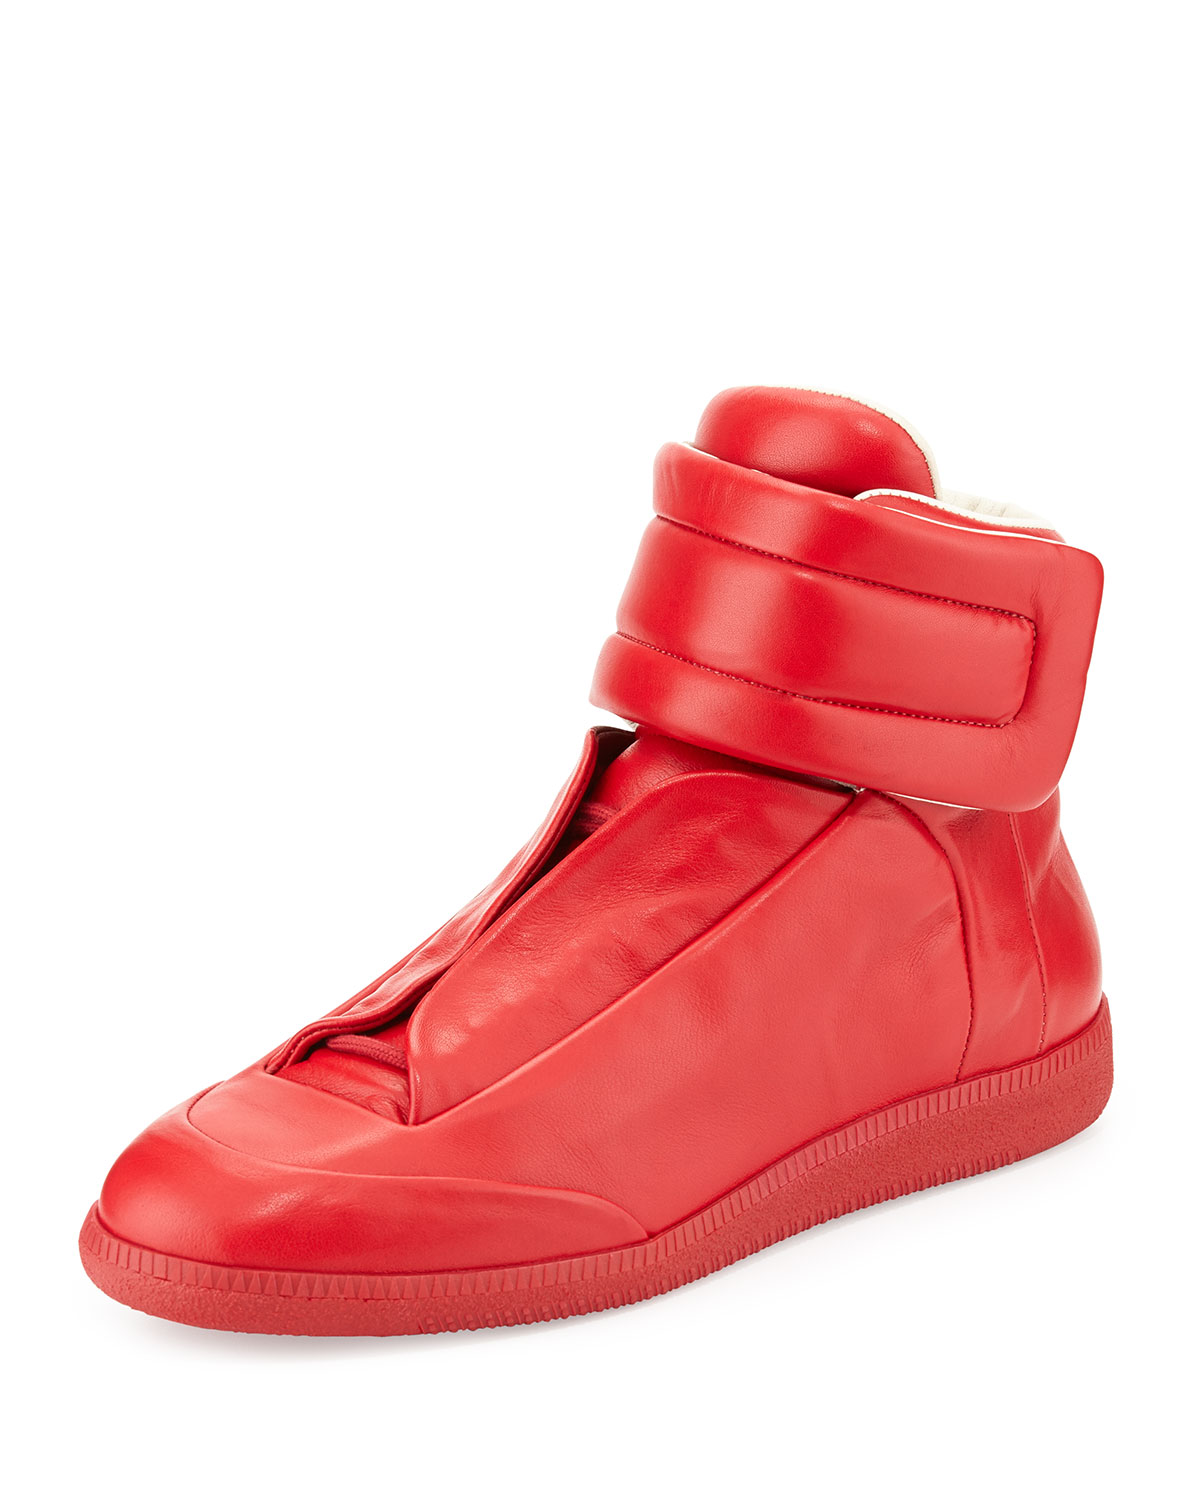 Maison Margiela Men s Future High-Top Sneakers  405dfe612d